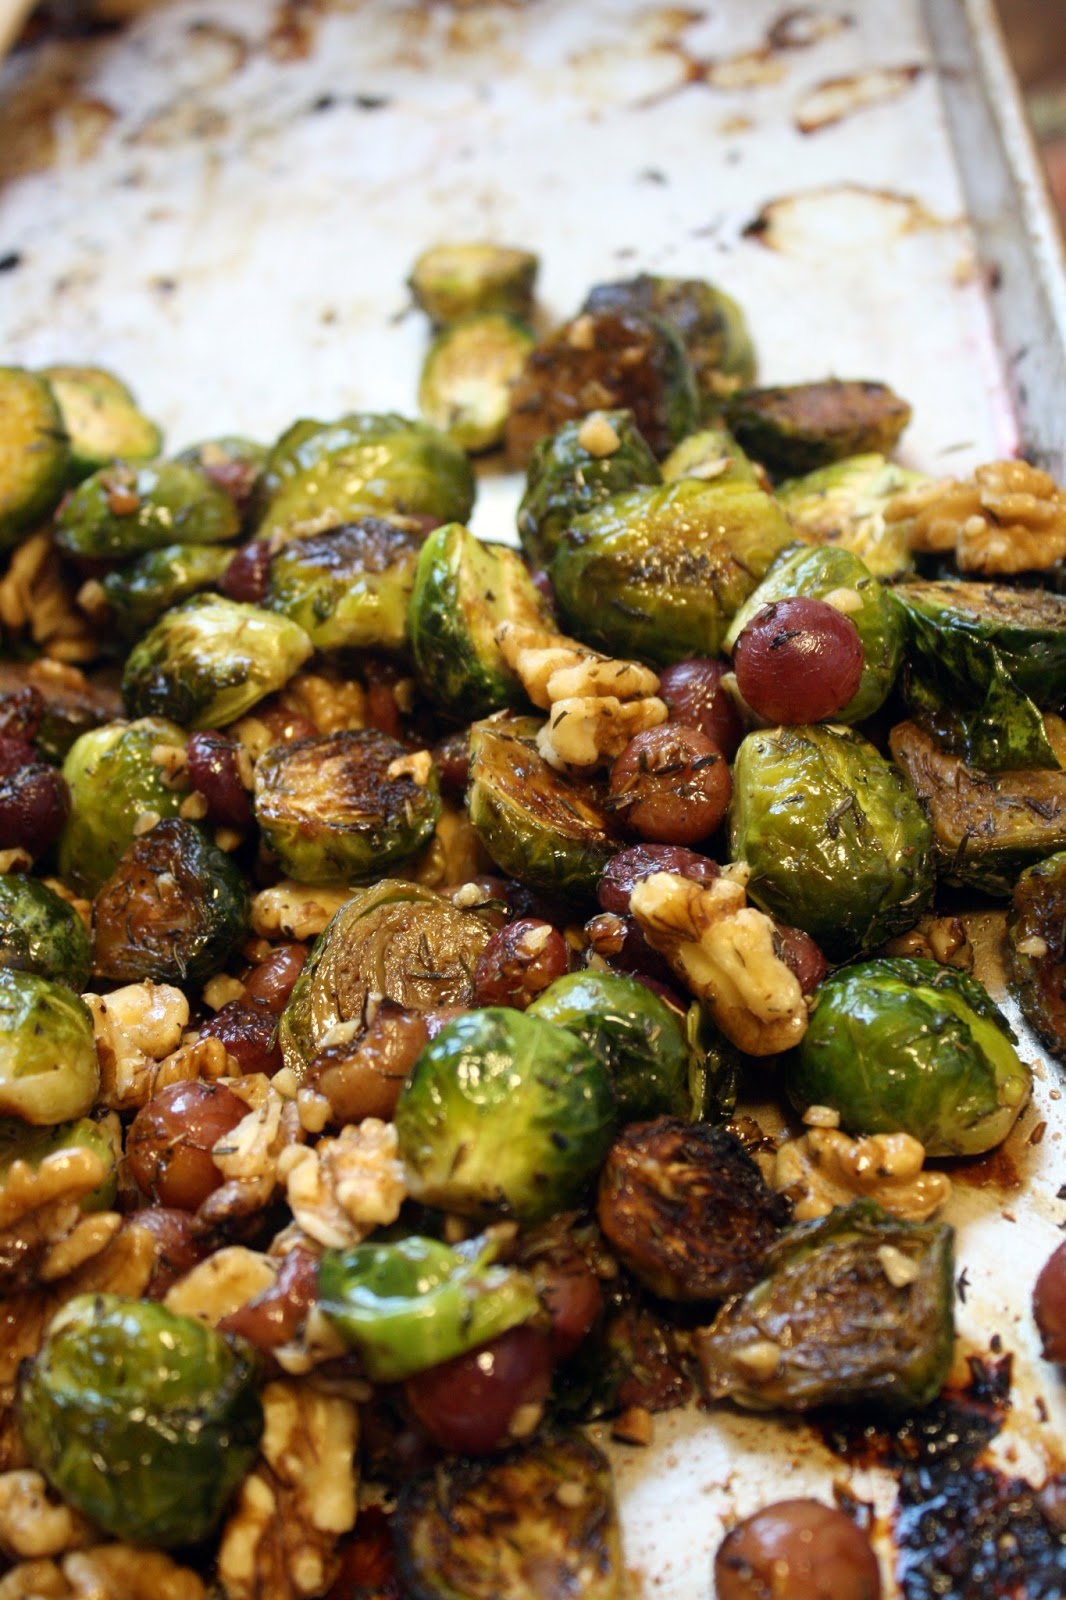 Make-Meals Mama: Roasted Brussels Sprouts with Grapes ...